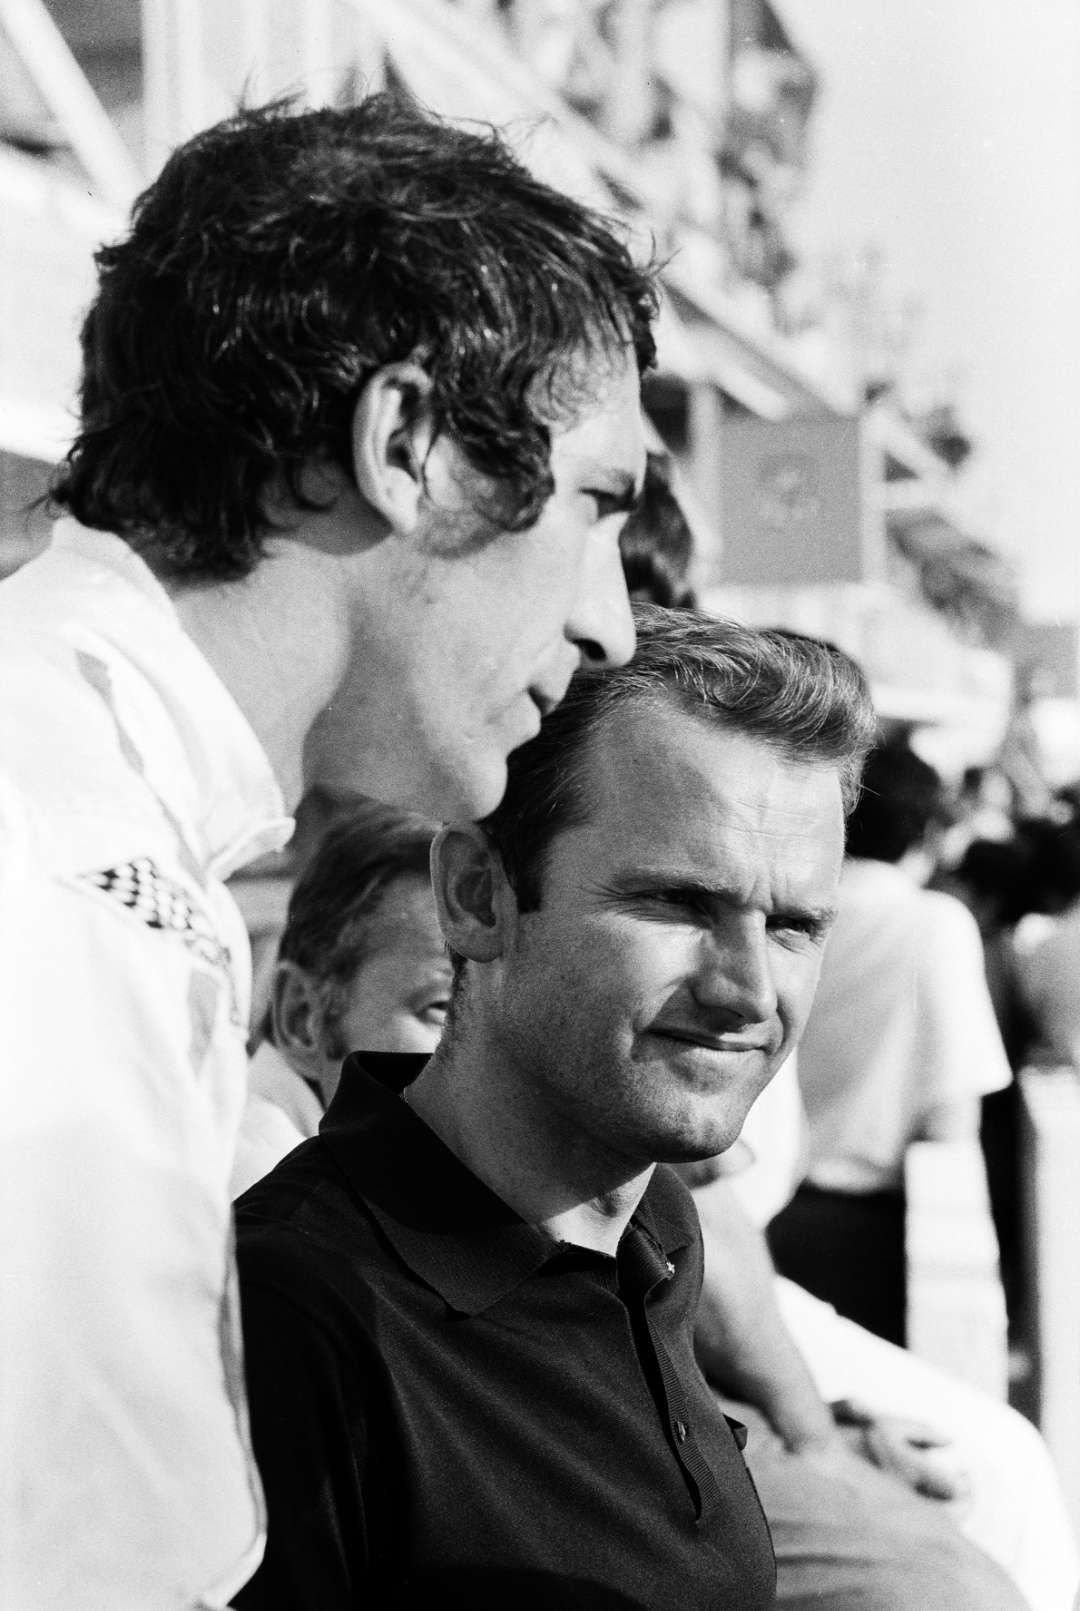 Ferdinand Piëch (rechts) und Vic Elford (links) in Le Mans 1969.